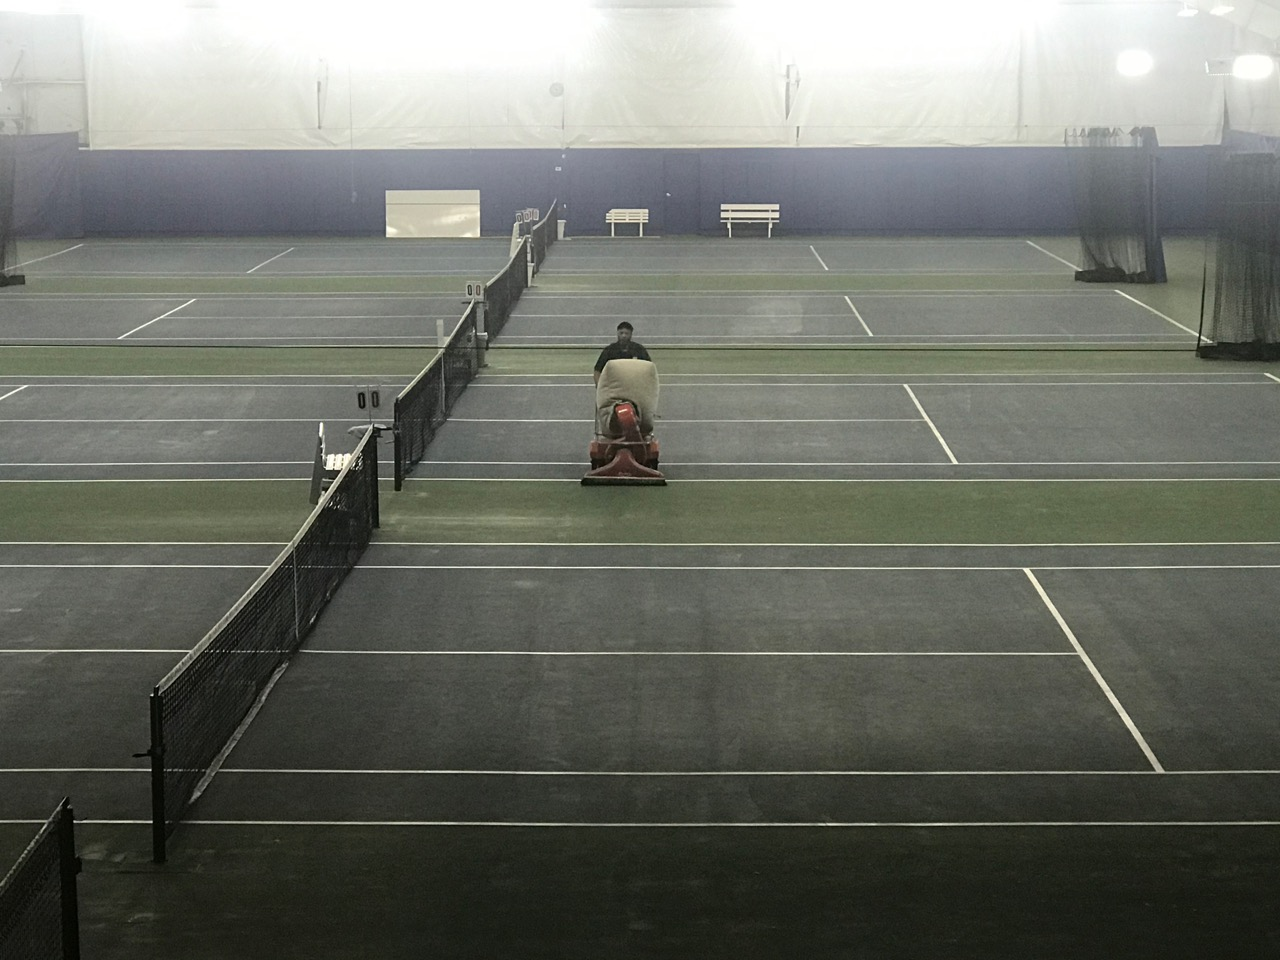 Carroll Tennis Hires Summit Building Services For Weekly Cleanings